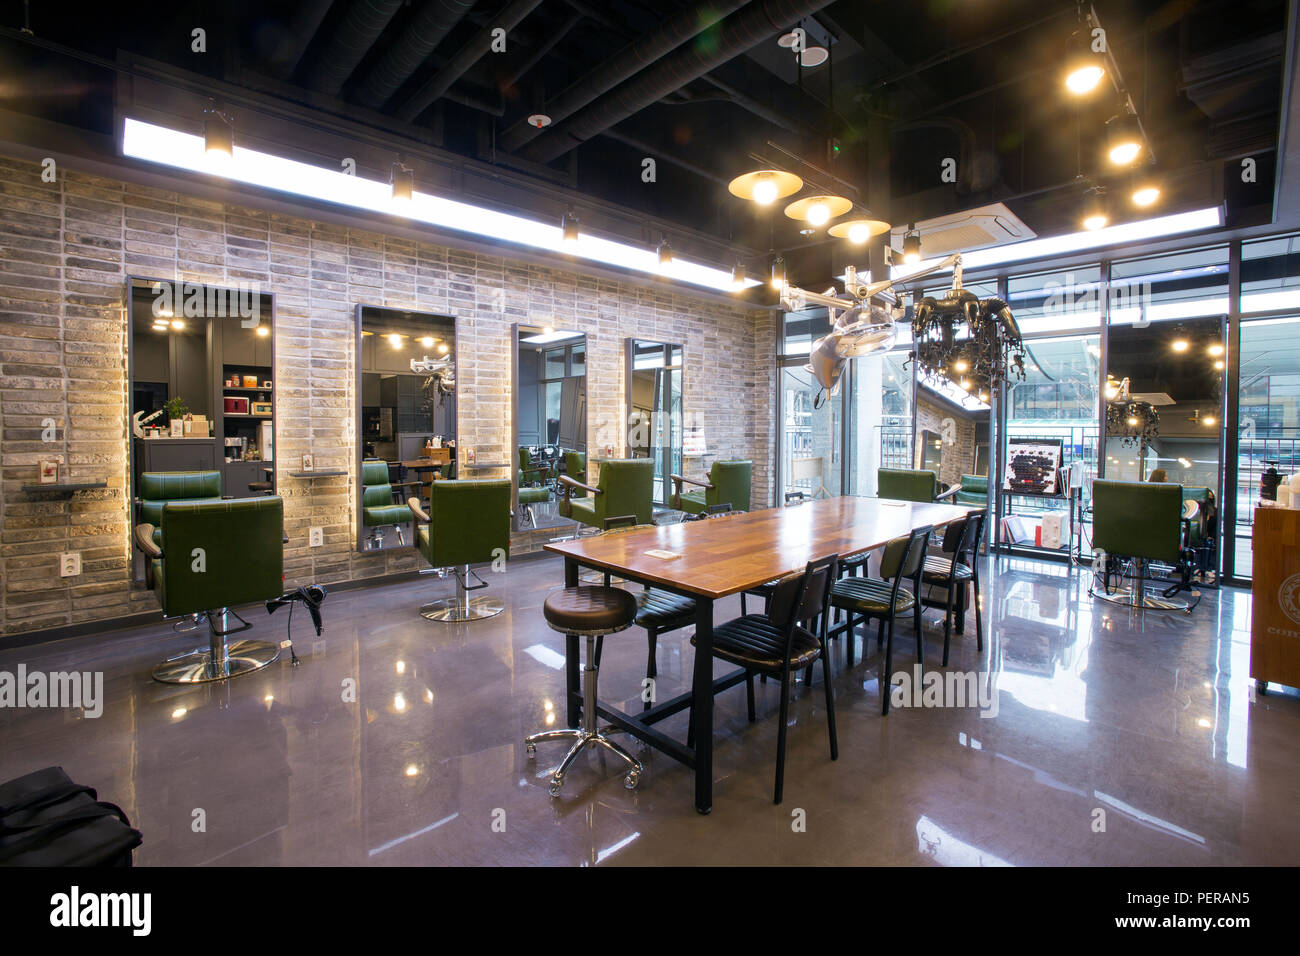 Hair Salon Interior Stockfotos & Hair Salon Interior Bilder ...